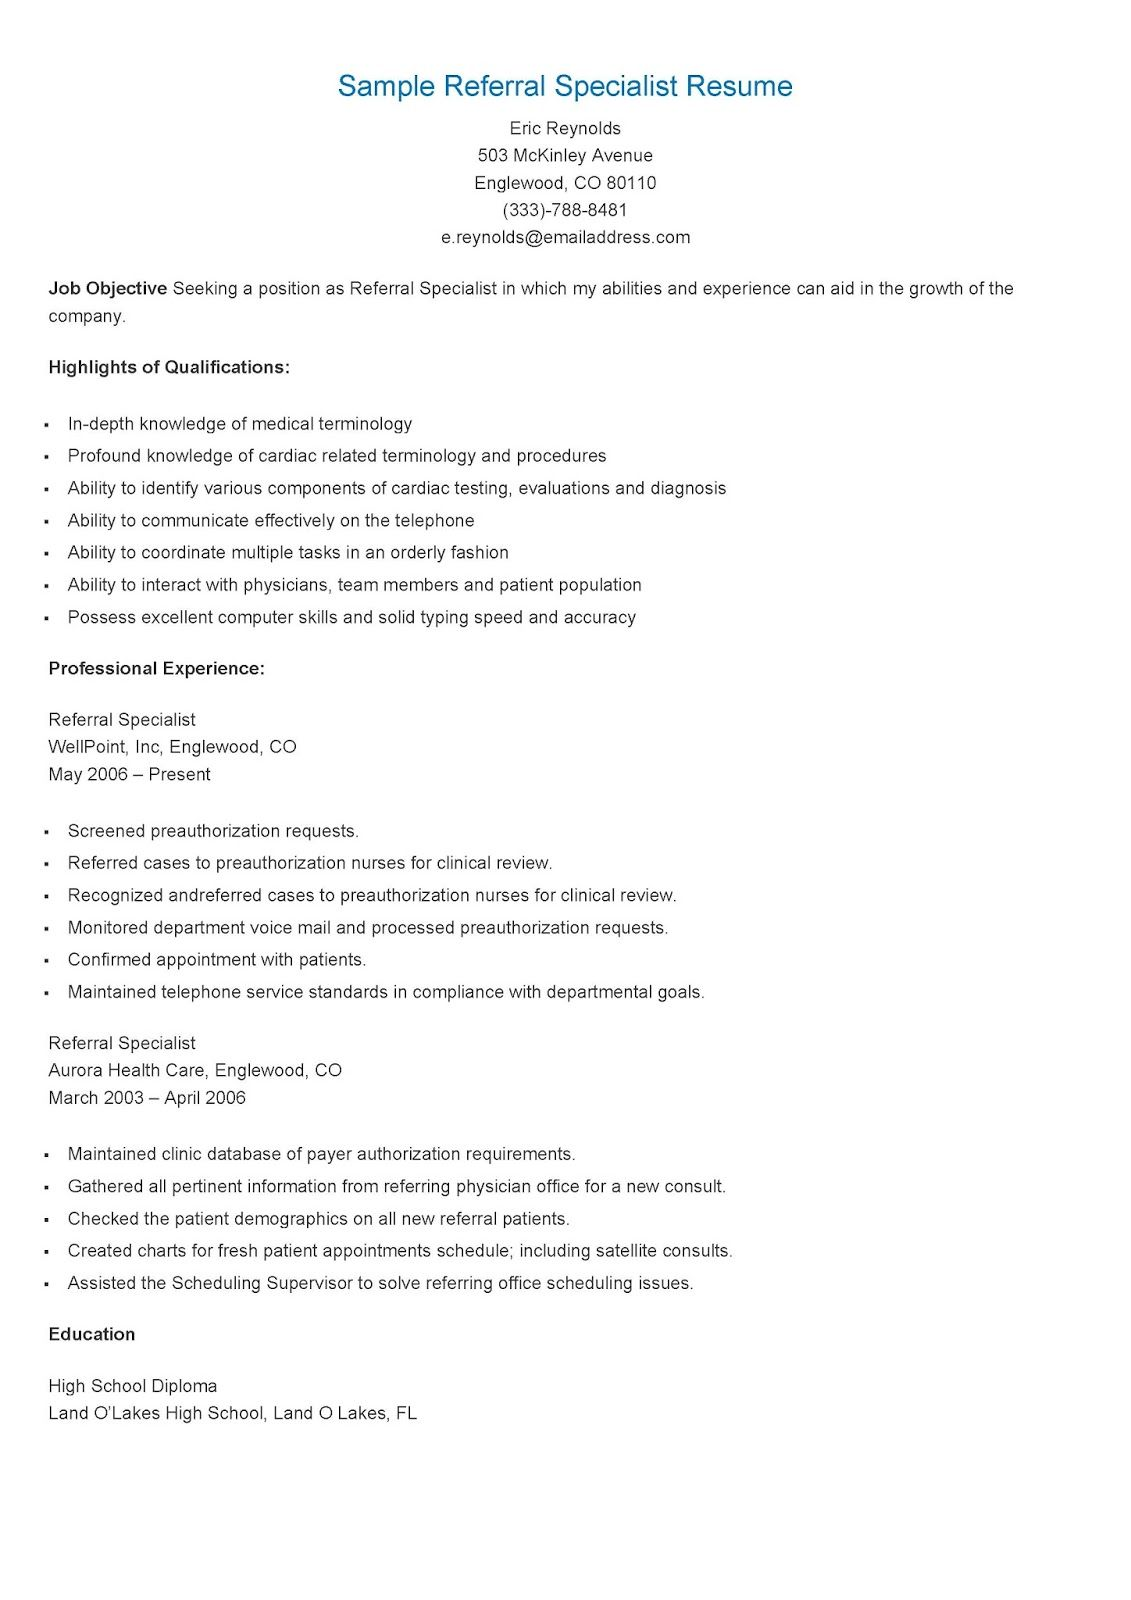 sample referral specialist resume